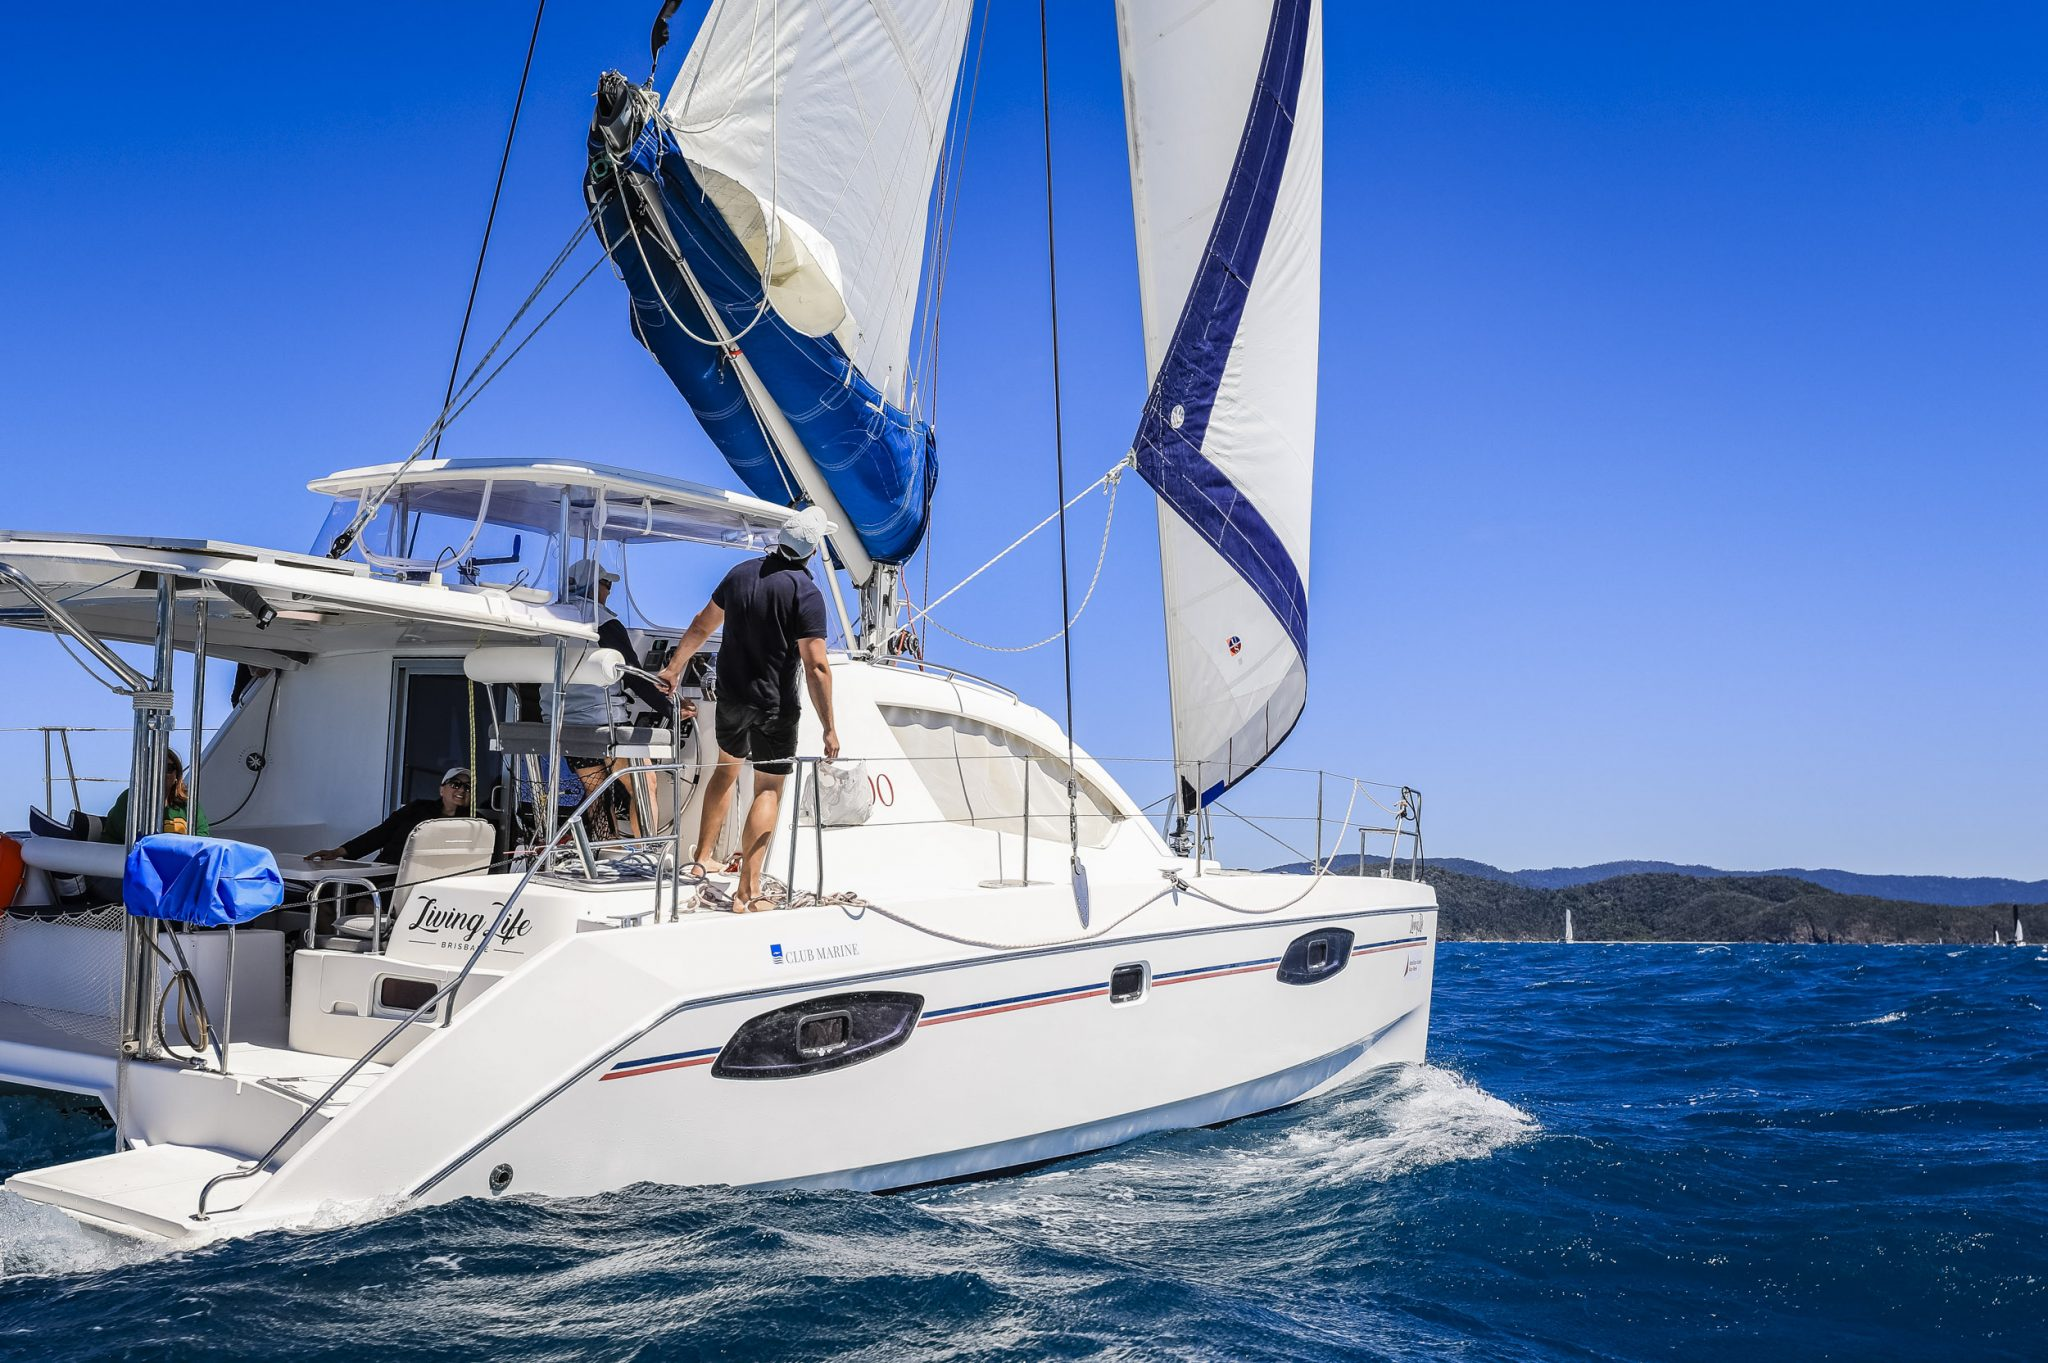 Living Life in the Whitsundays at Hamilton Island Race Week